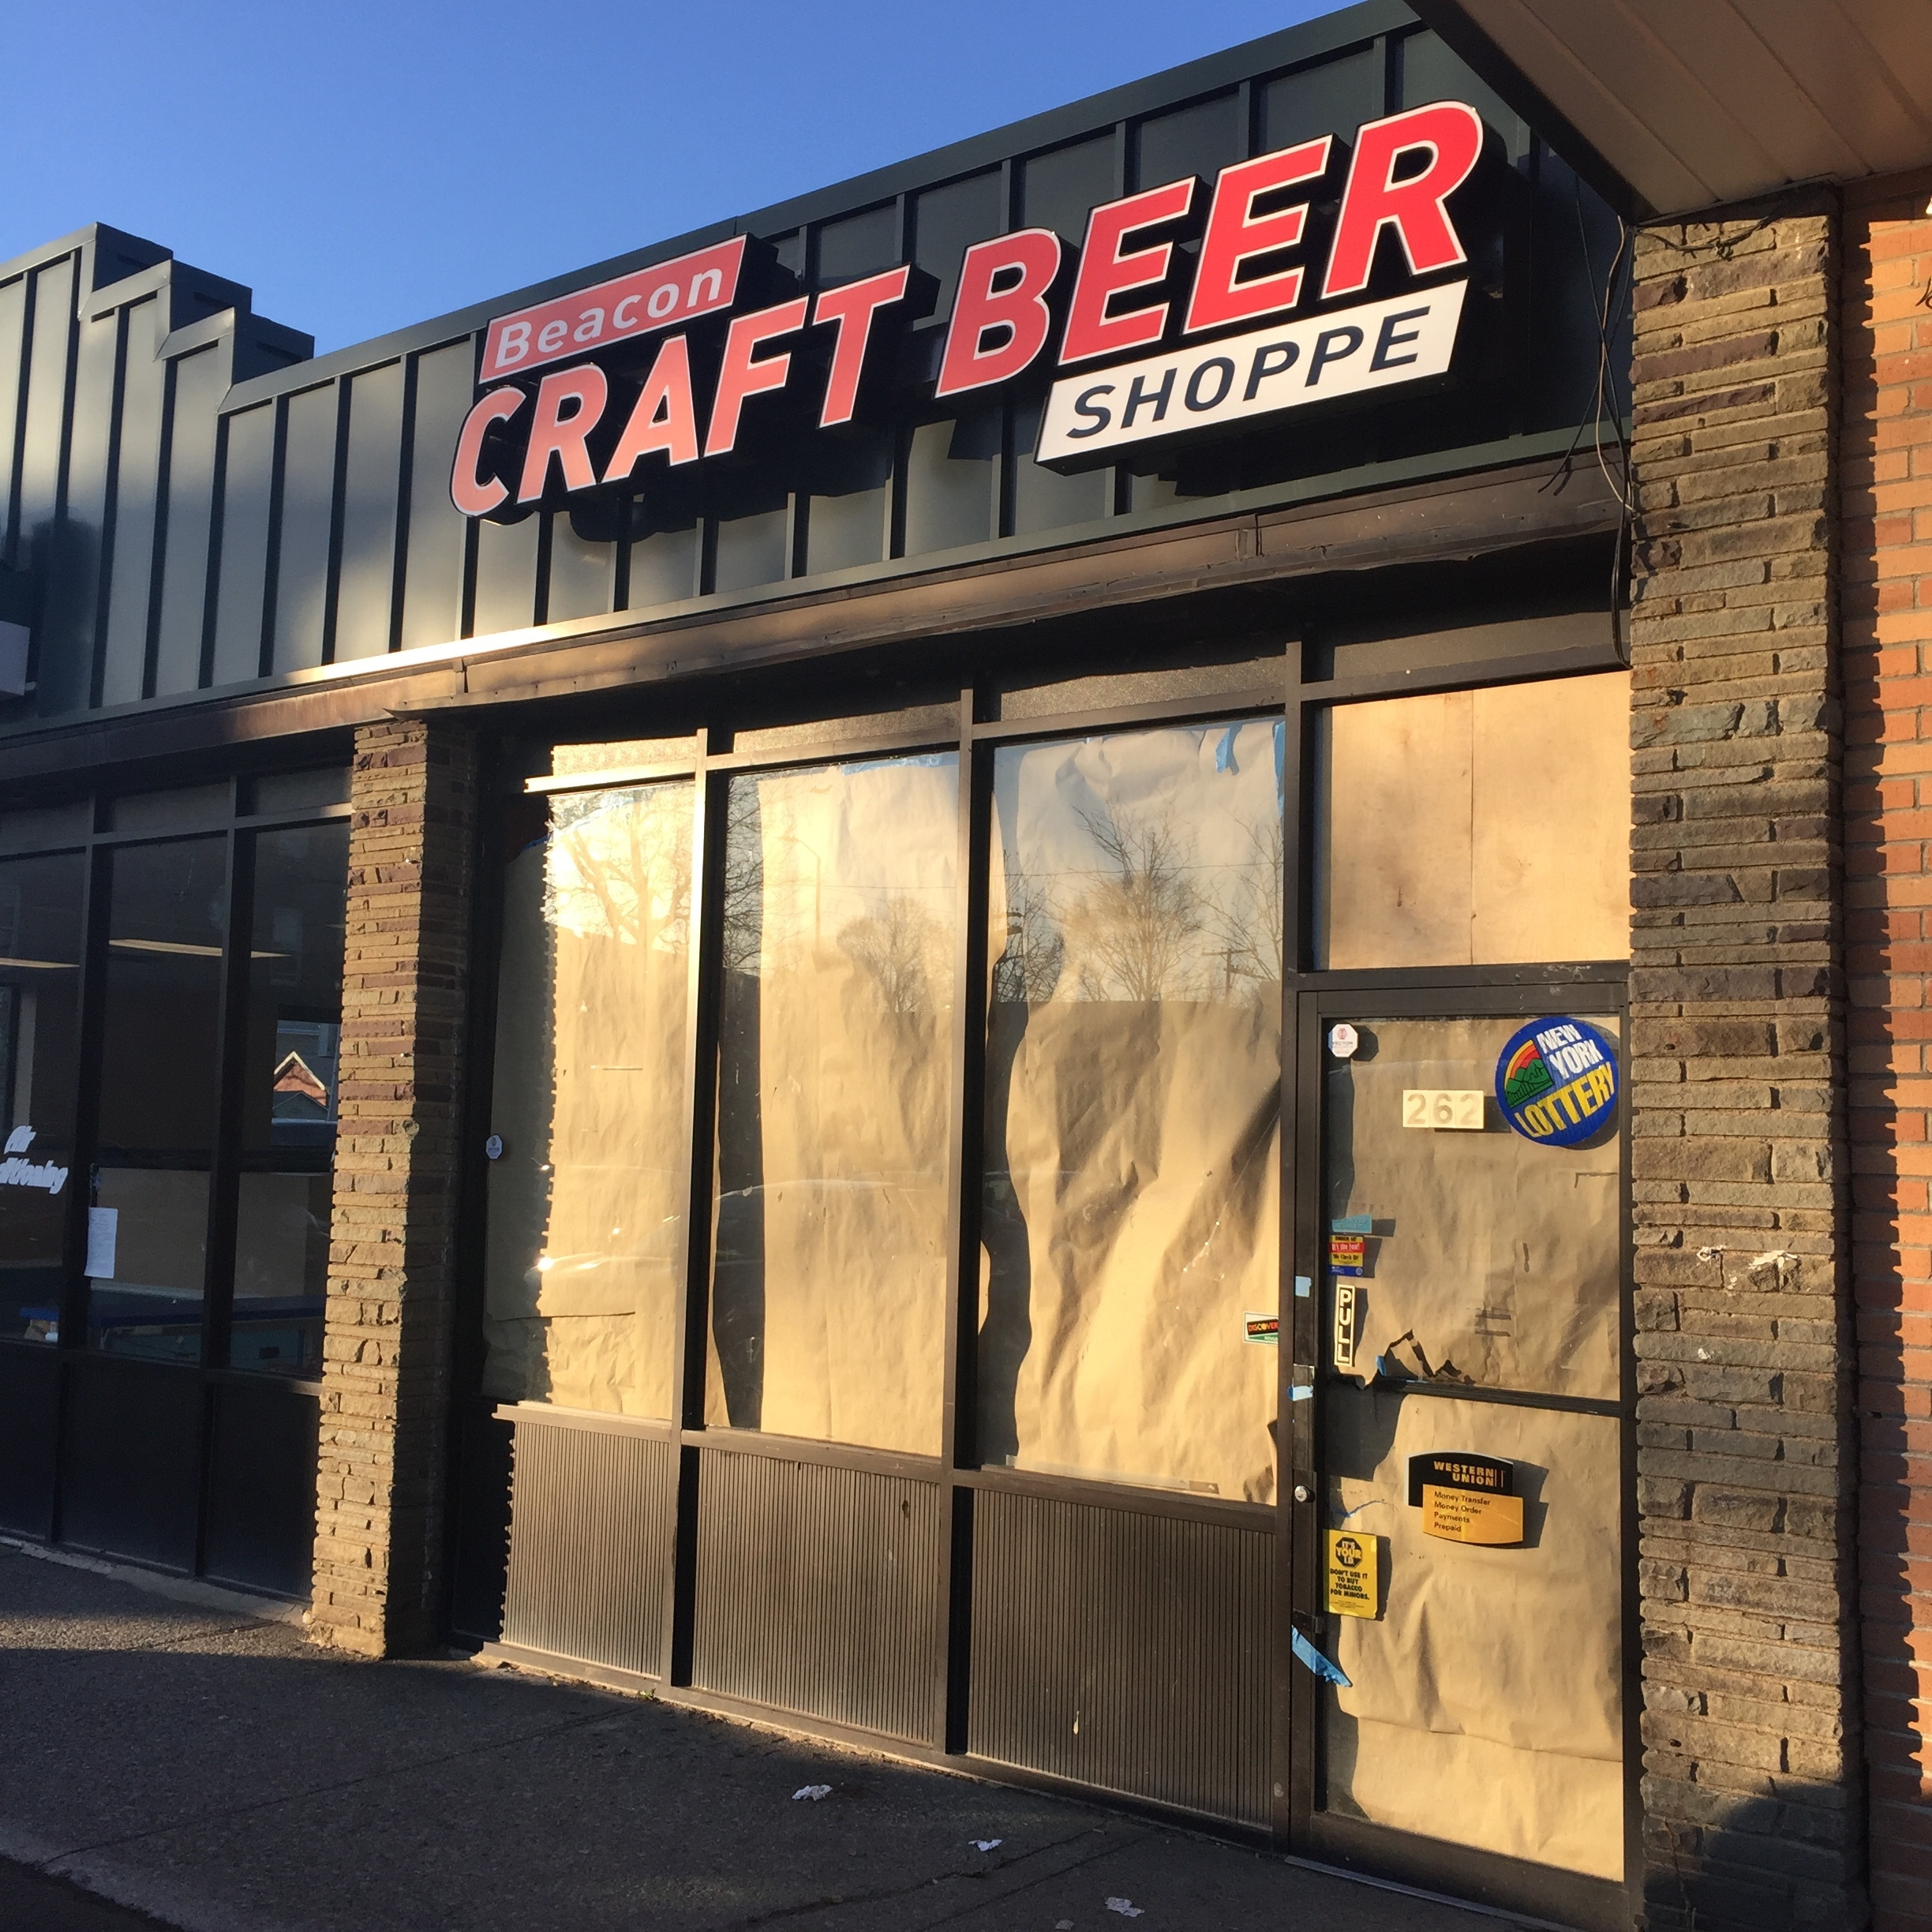 Come In! Craft Beer Shoppe Opens Next To Key Food — A Little